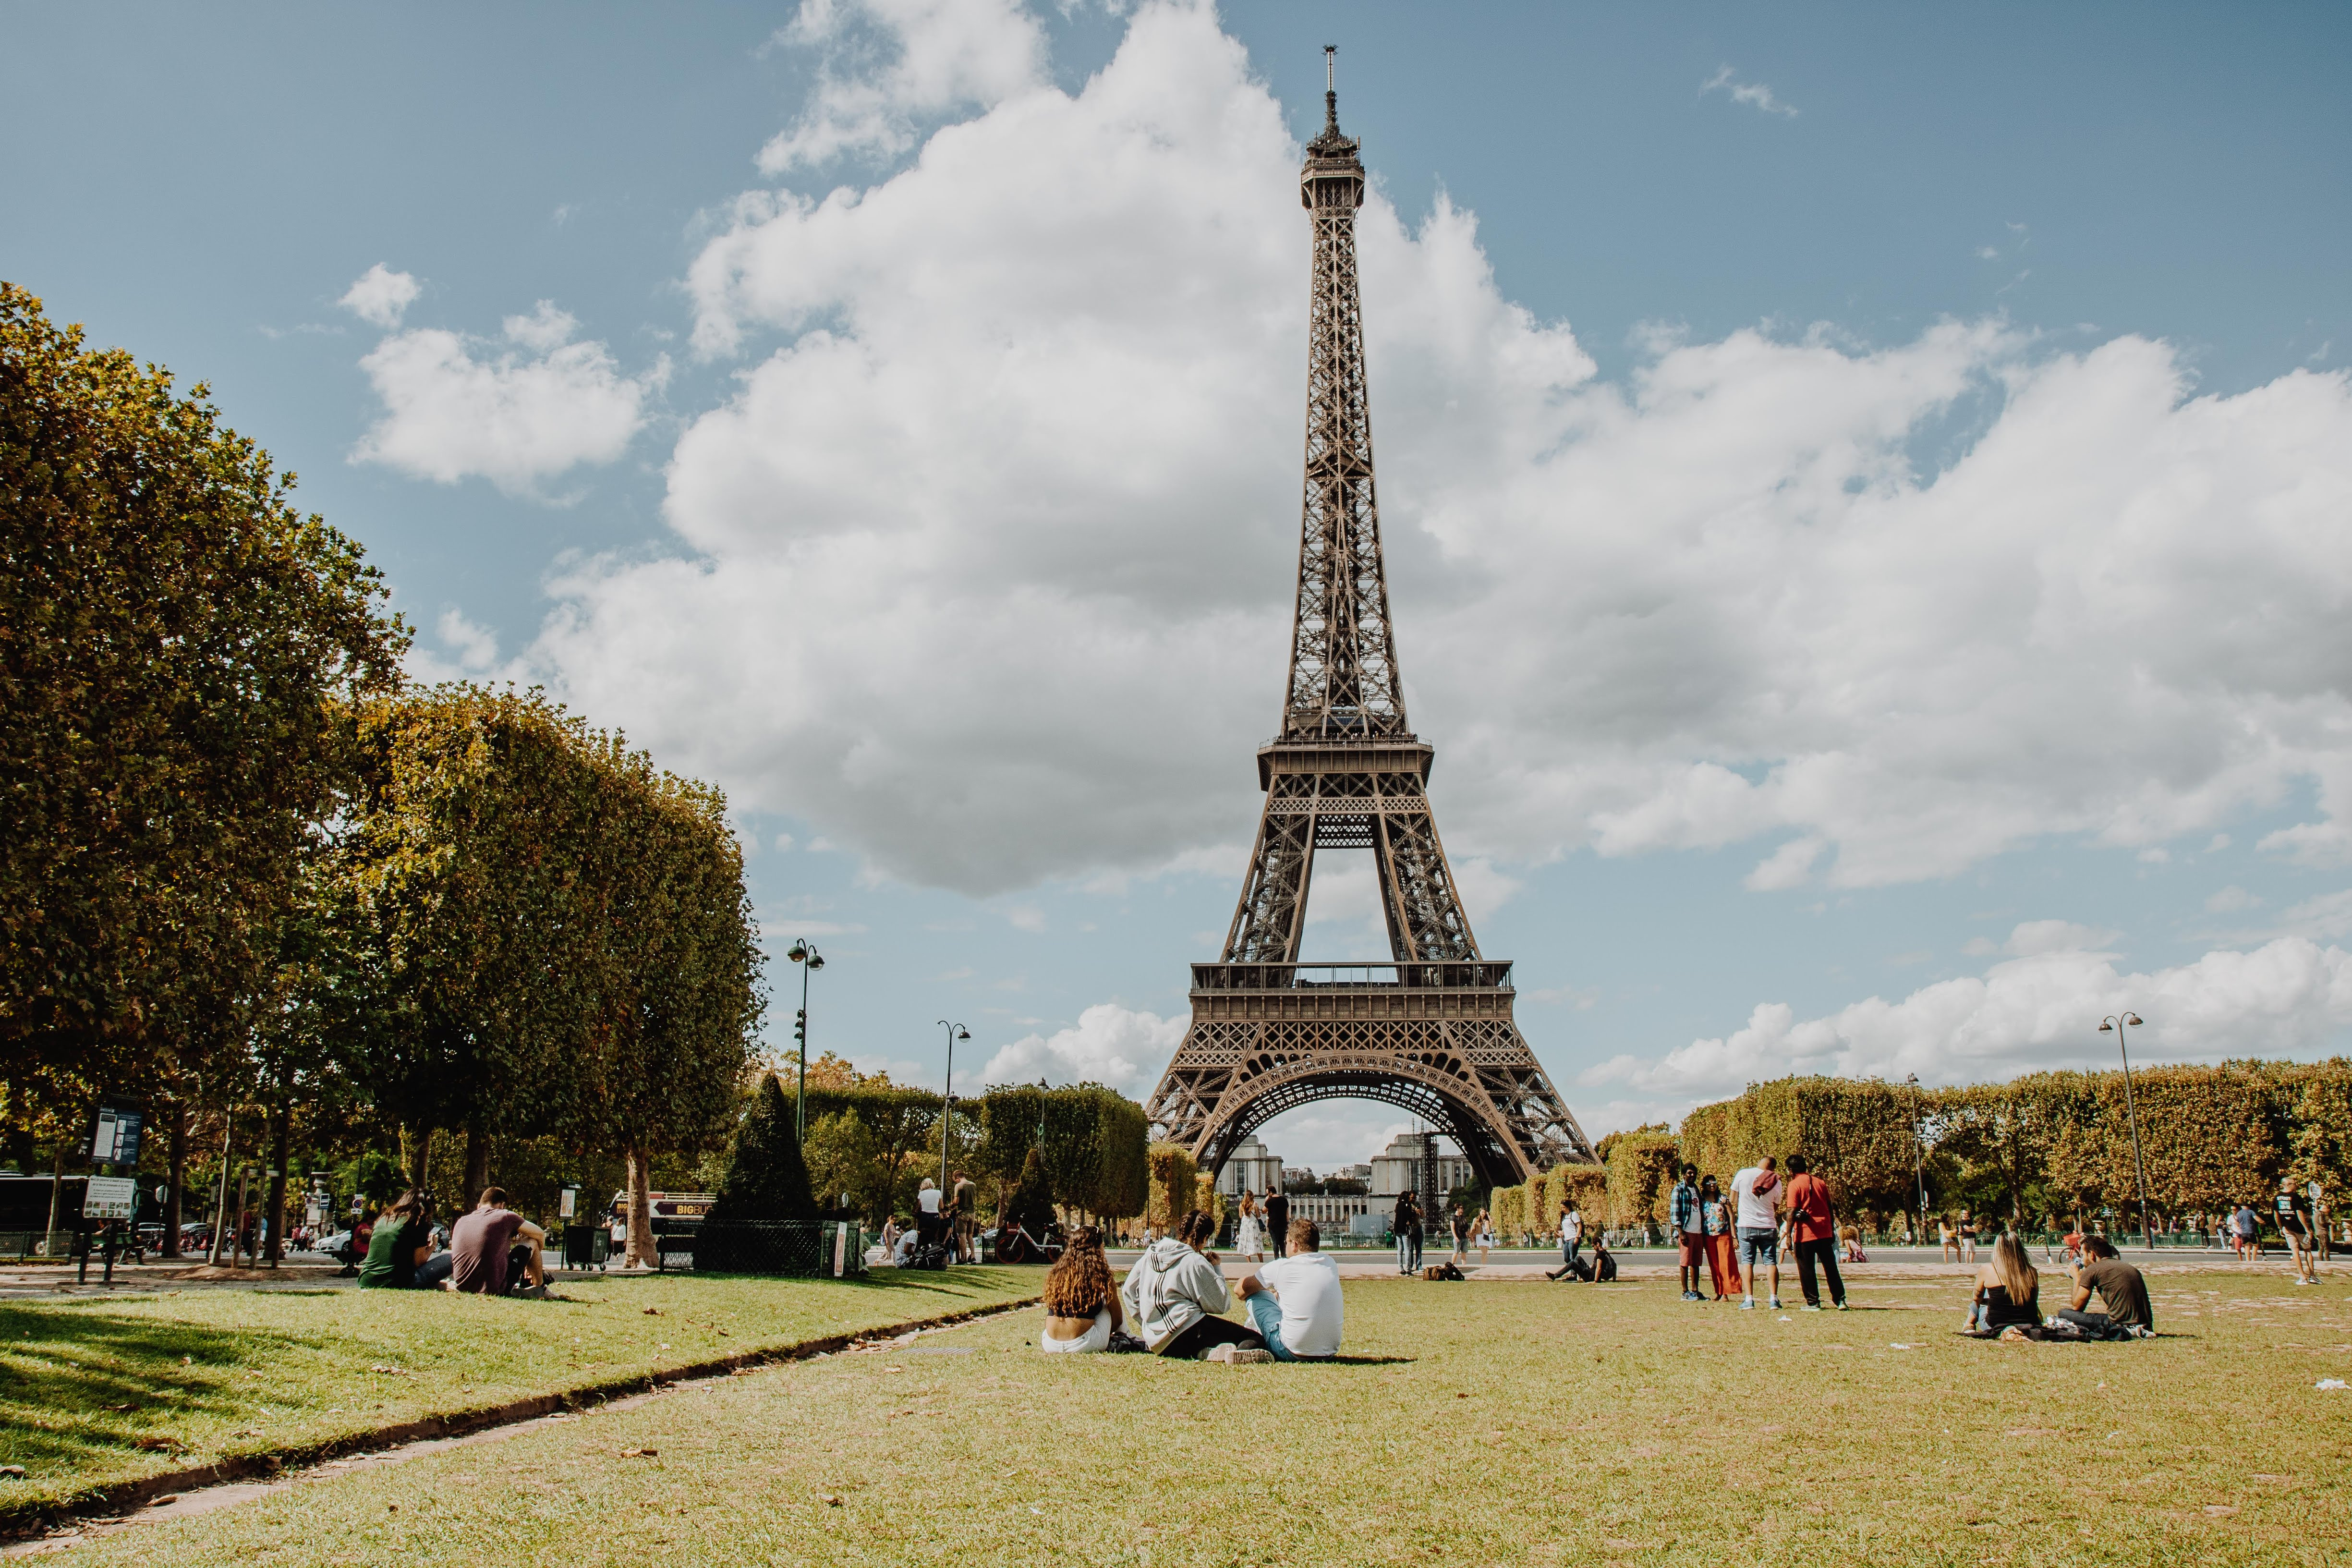 HOW TO BE A PRO IN PARIS